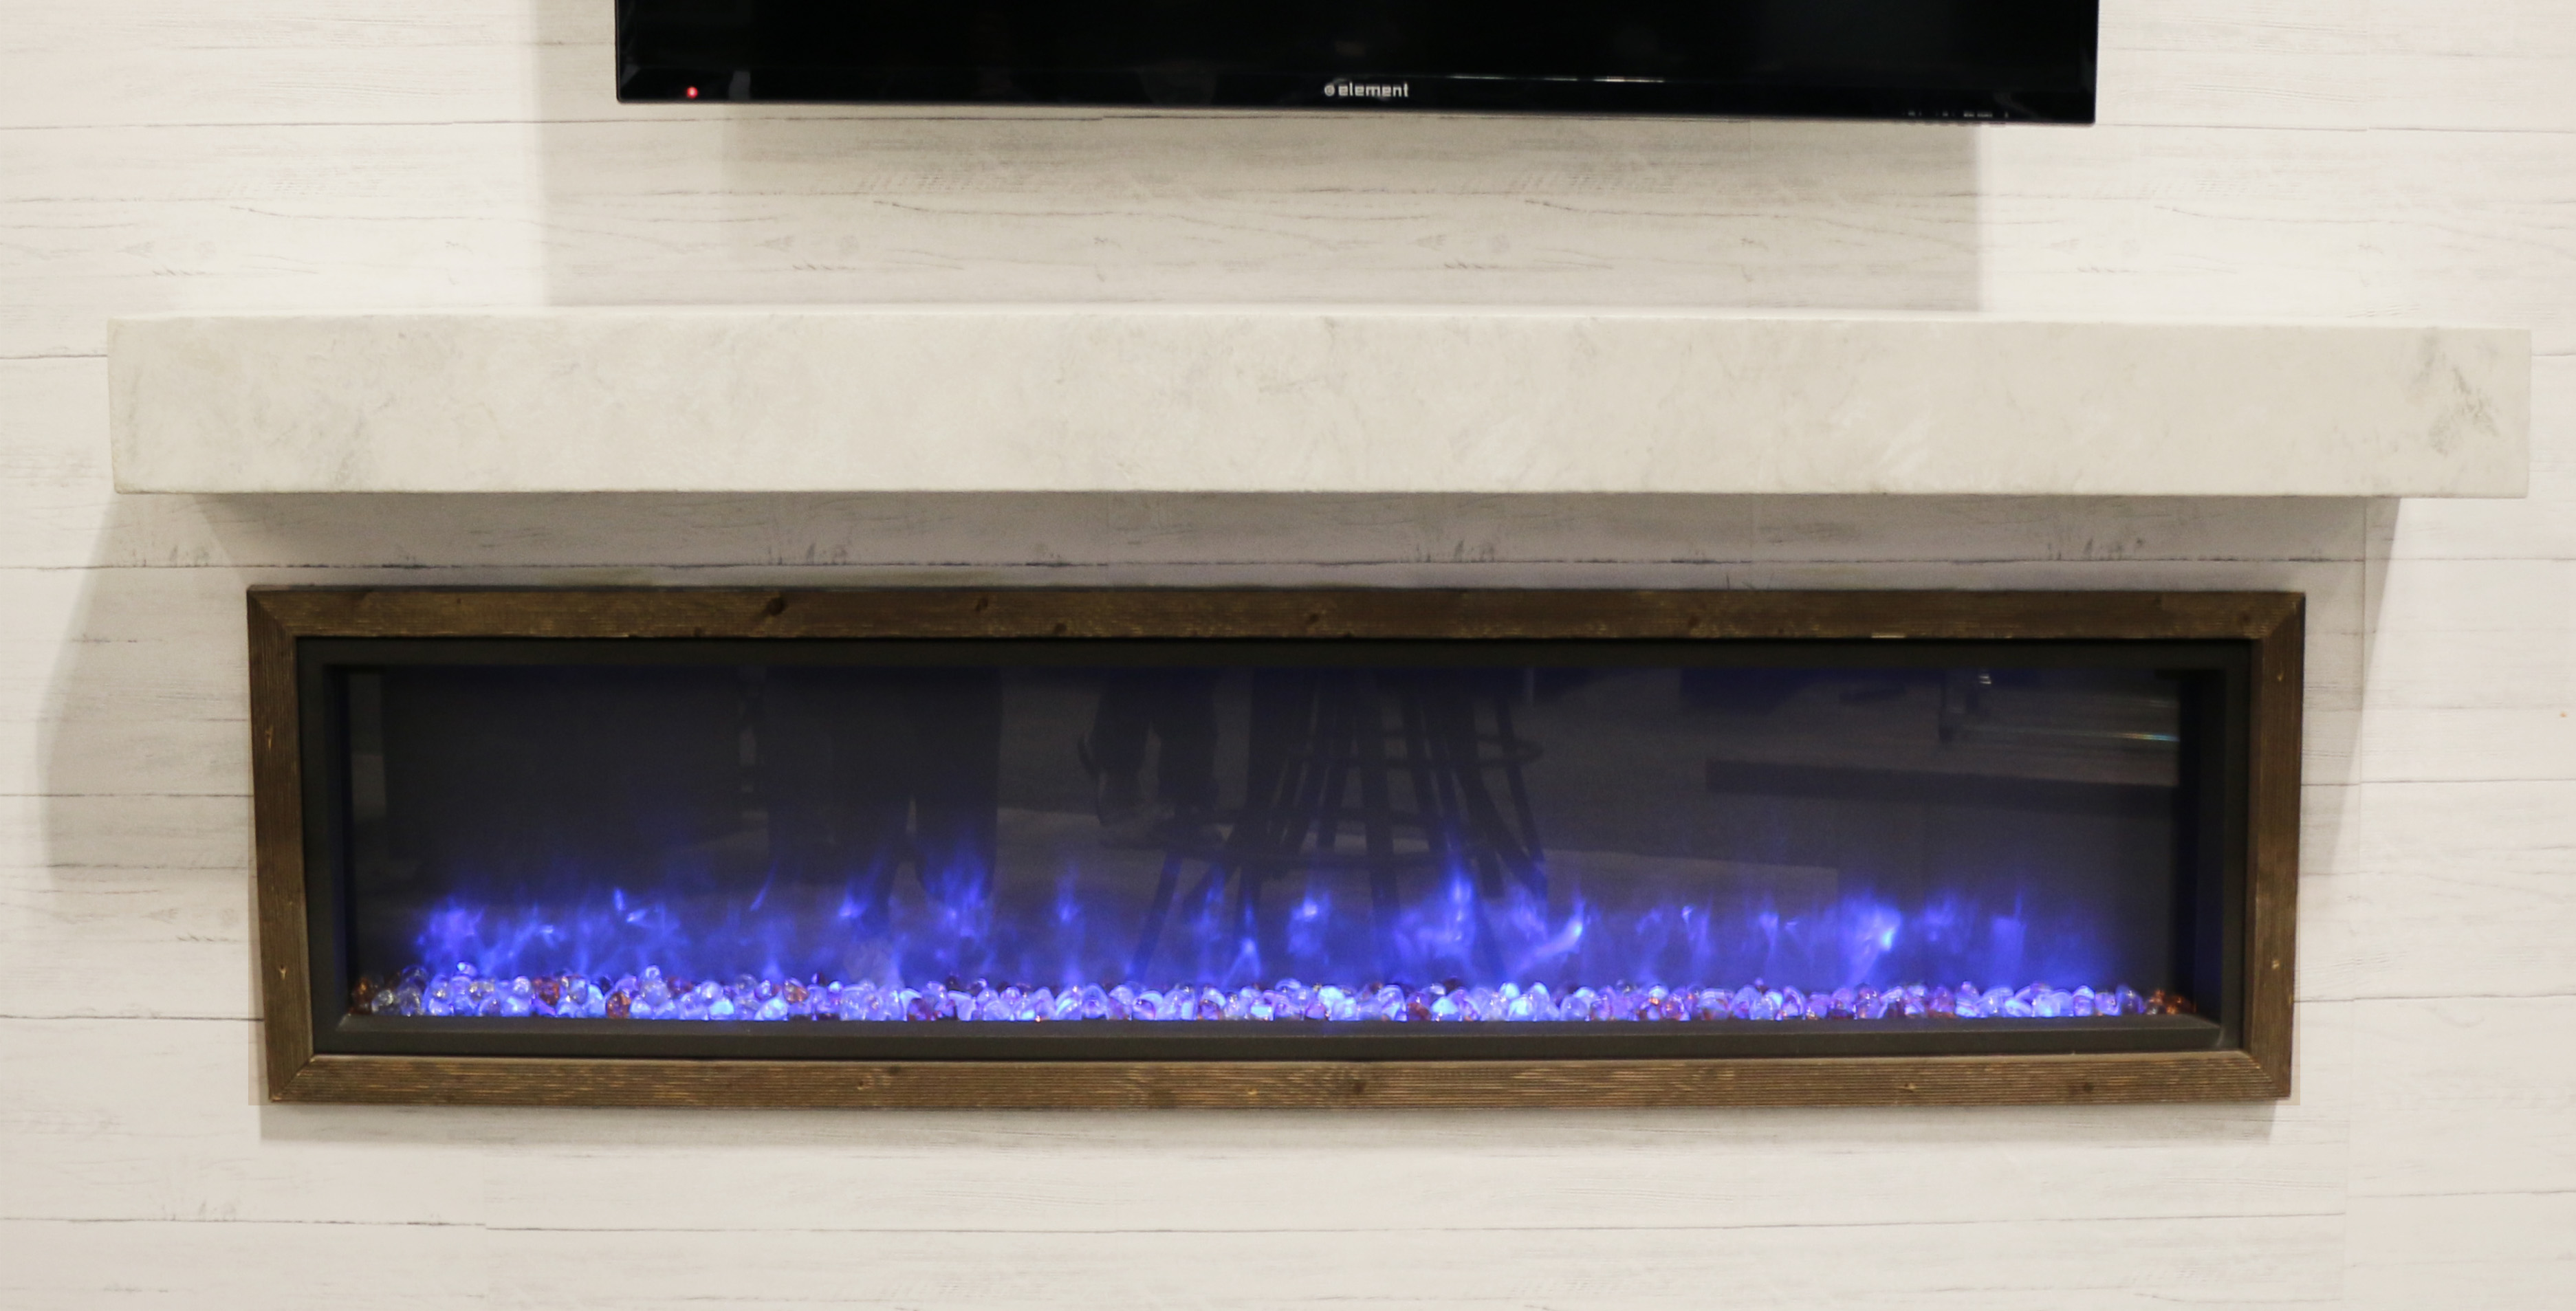 New Product White Onyx Non Combustible Supercast Mantel